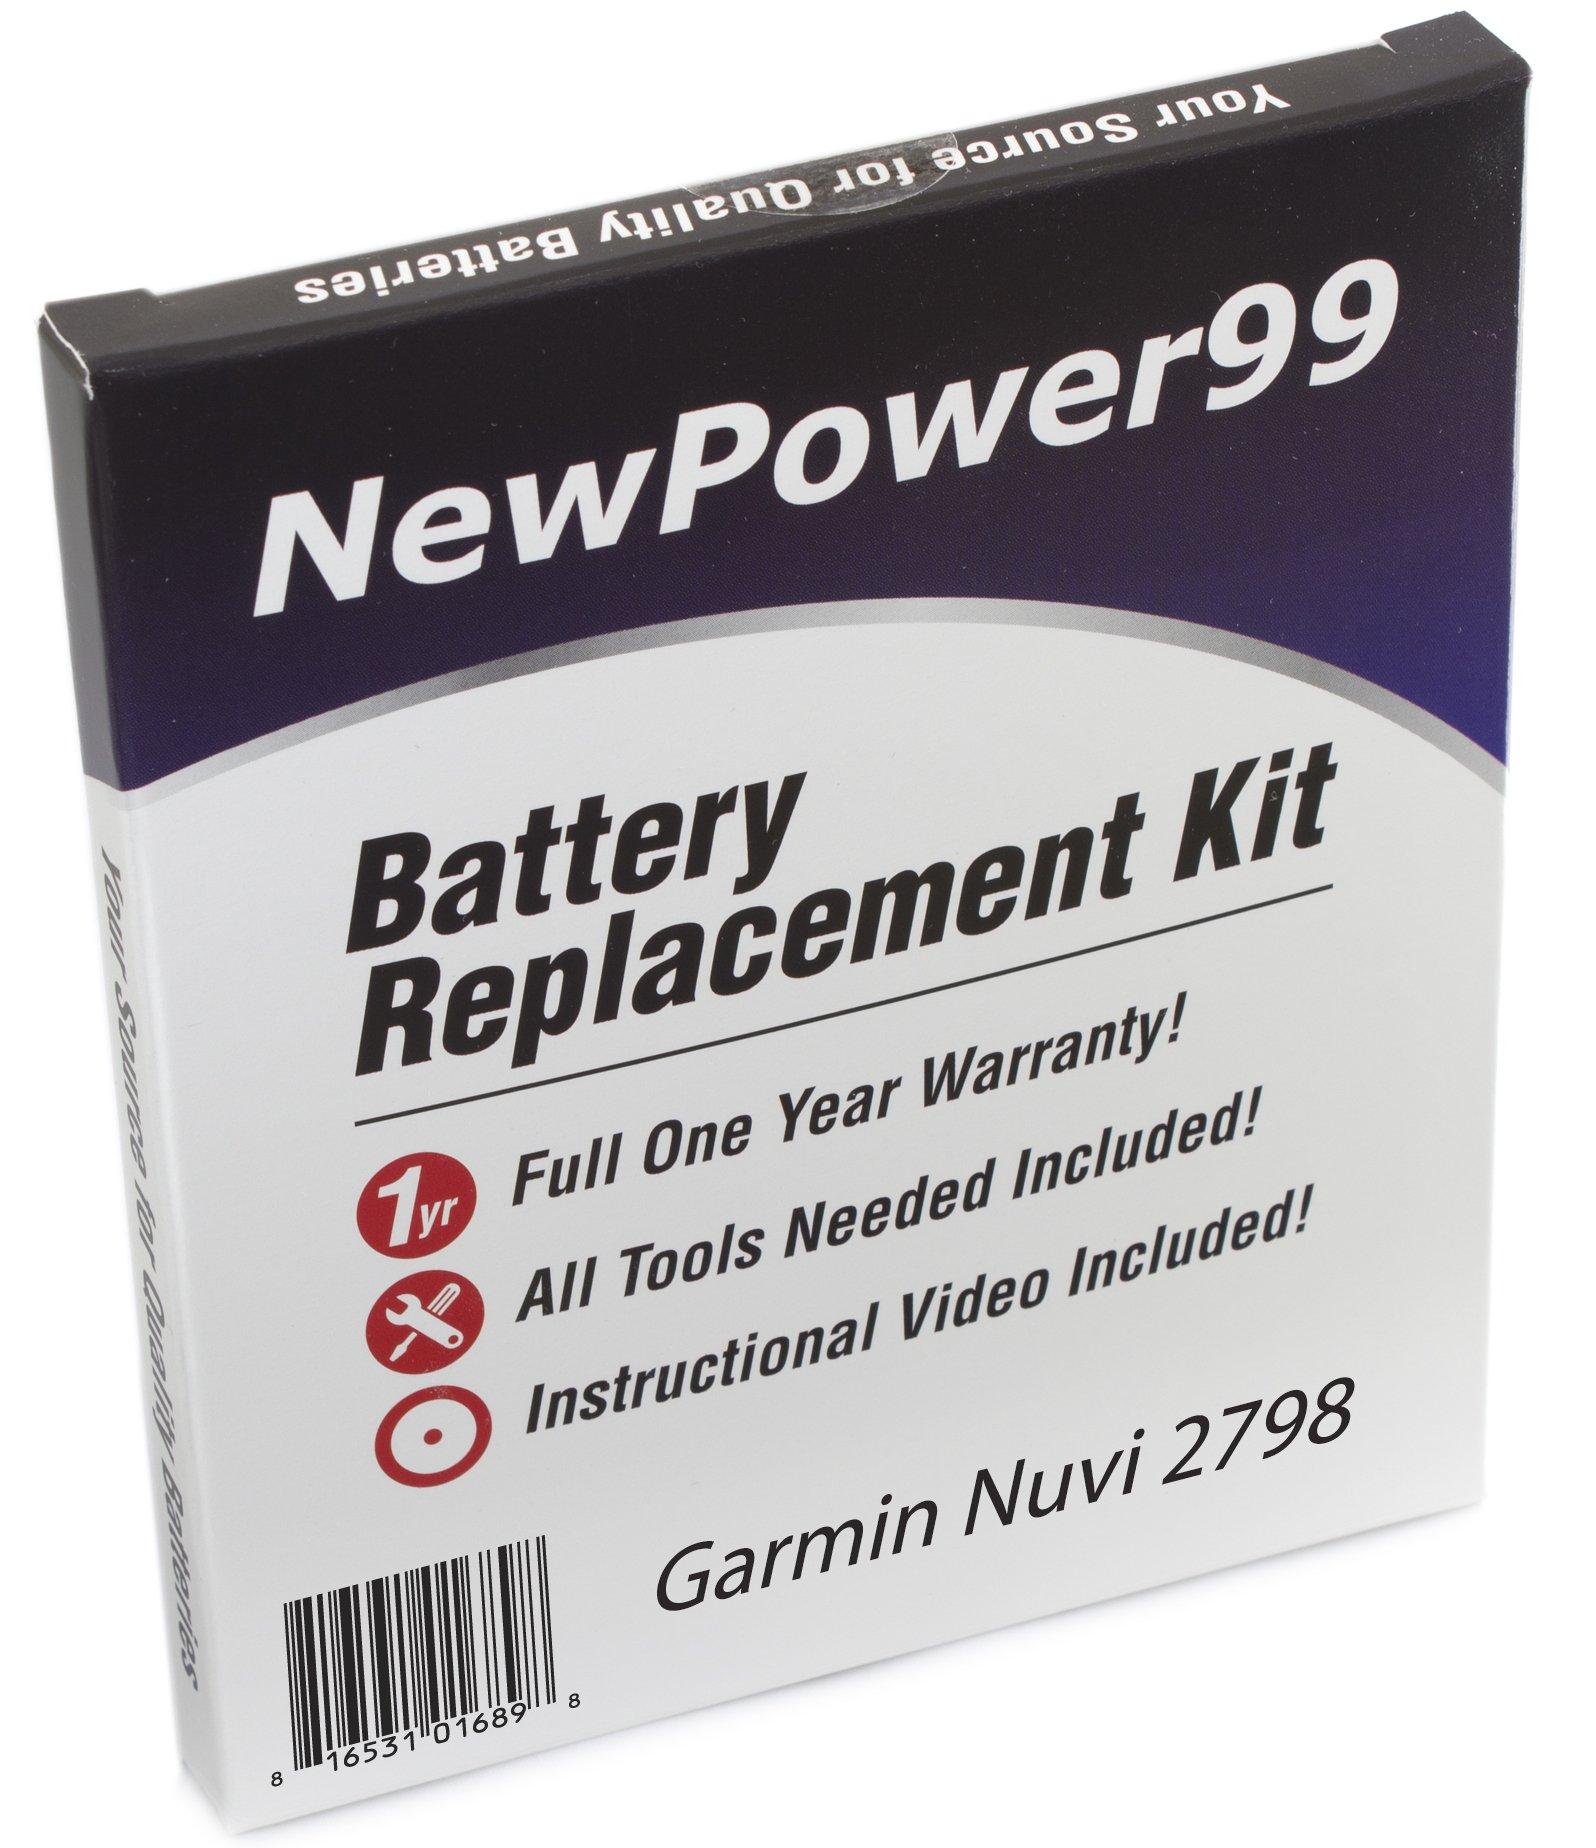 NewPower99 Battery Replacement Kit with Battery, Video Instructions and Tools for Garmin Nuvi 2798 by NewPower99